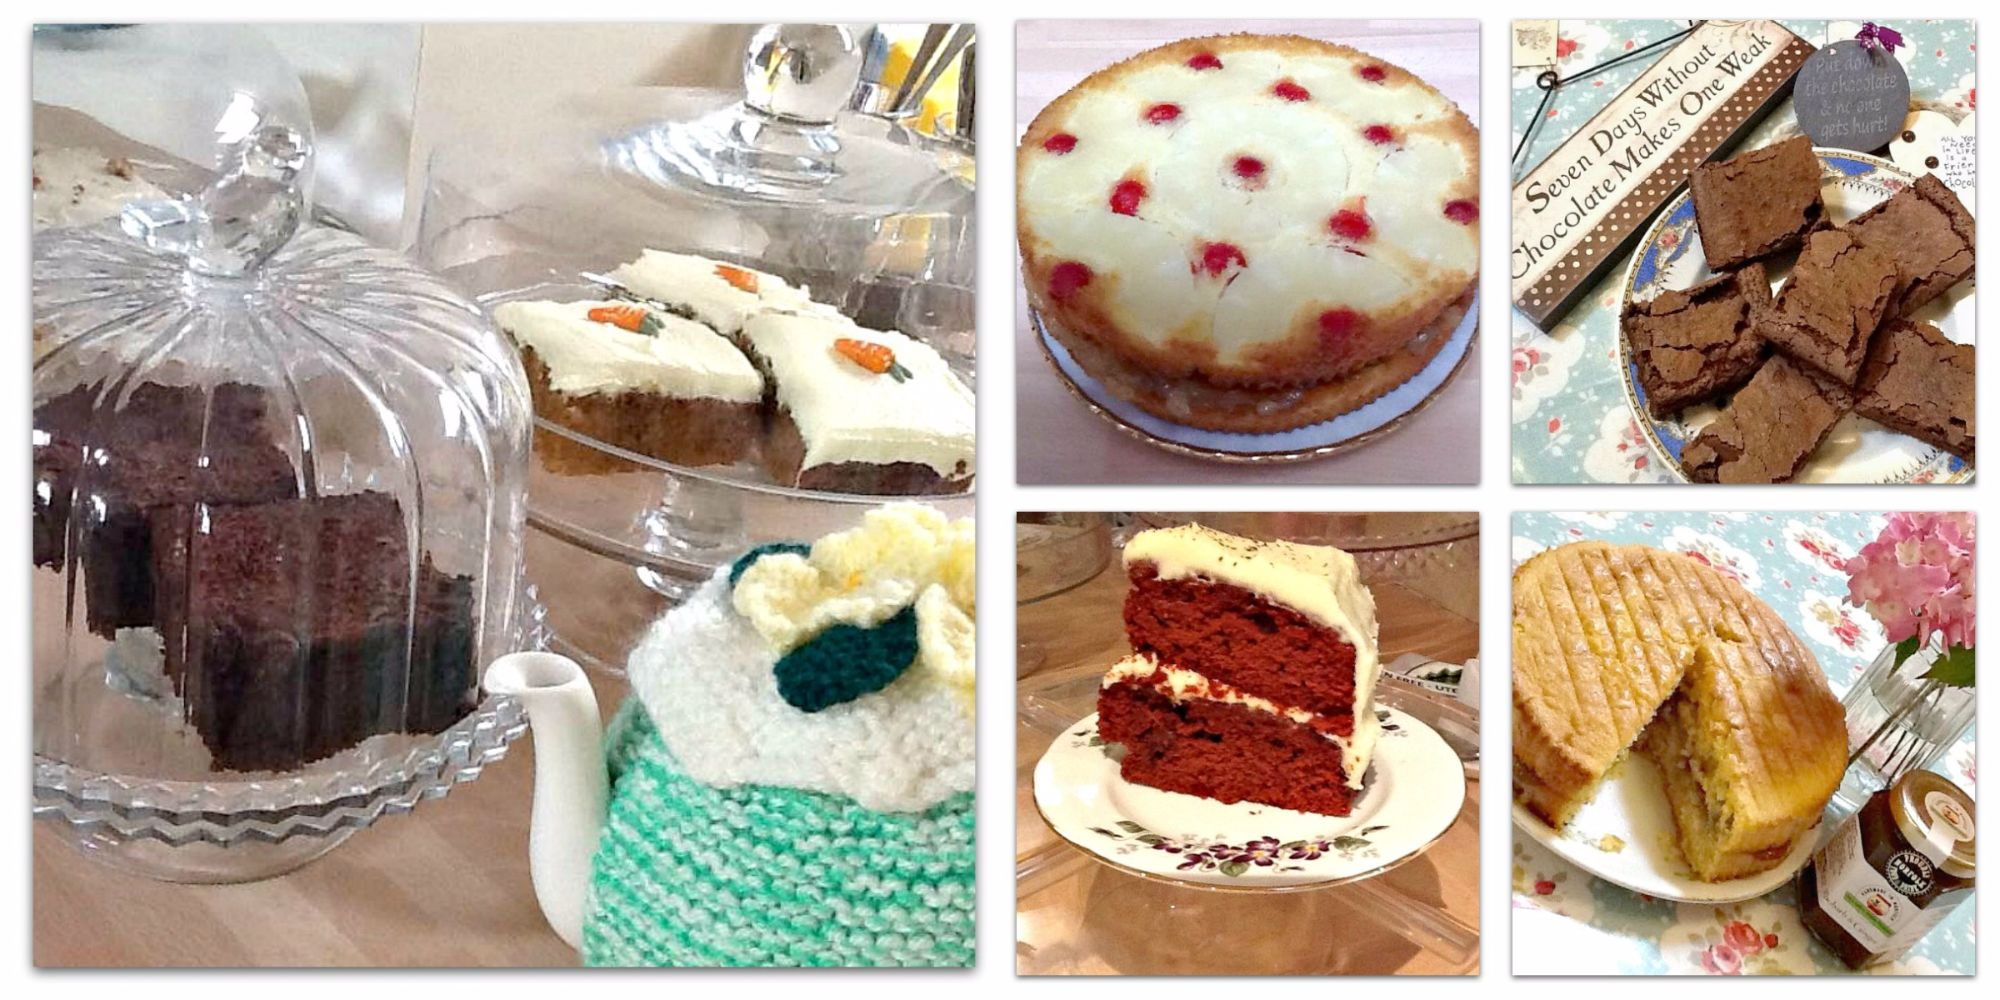 Homemade cakes available at Prima Rosa in Salhouse, Norfolk